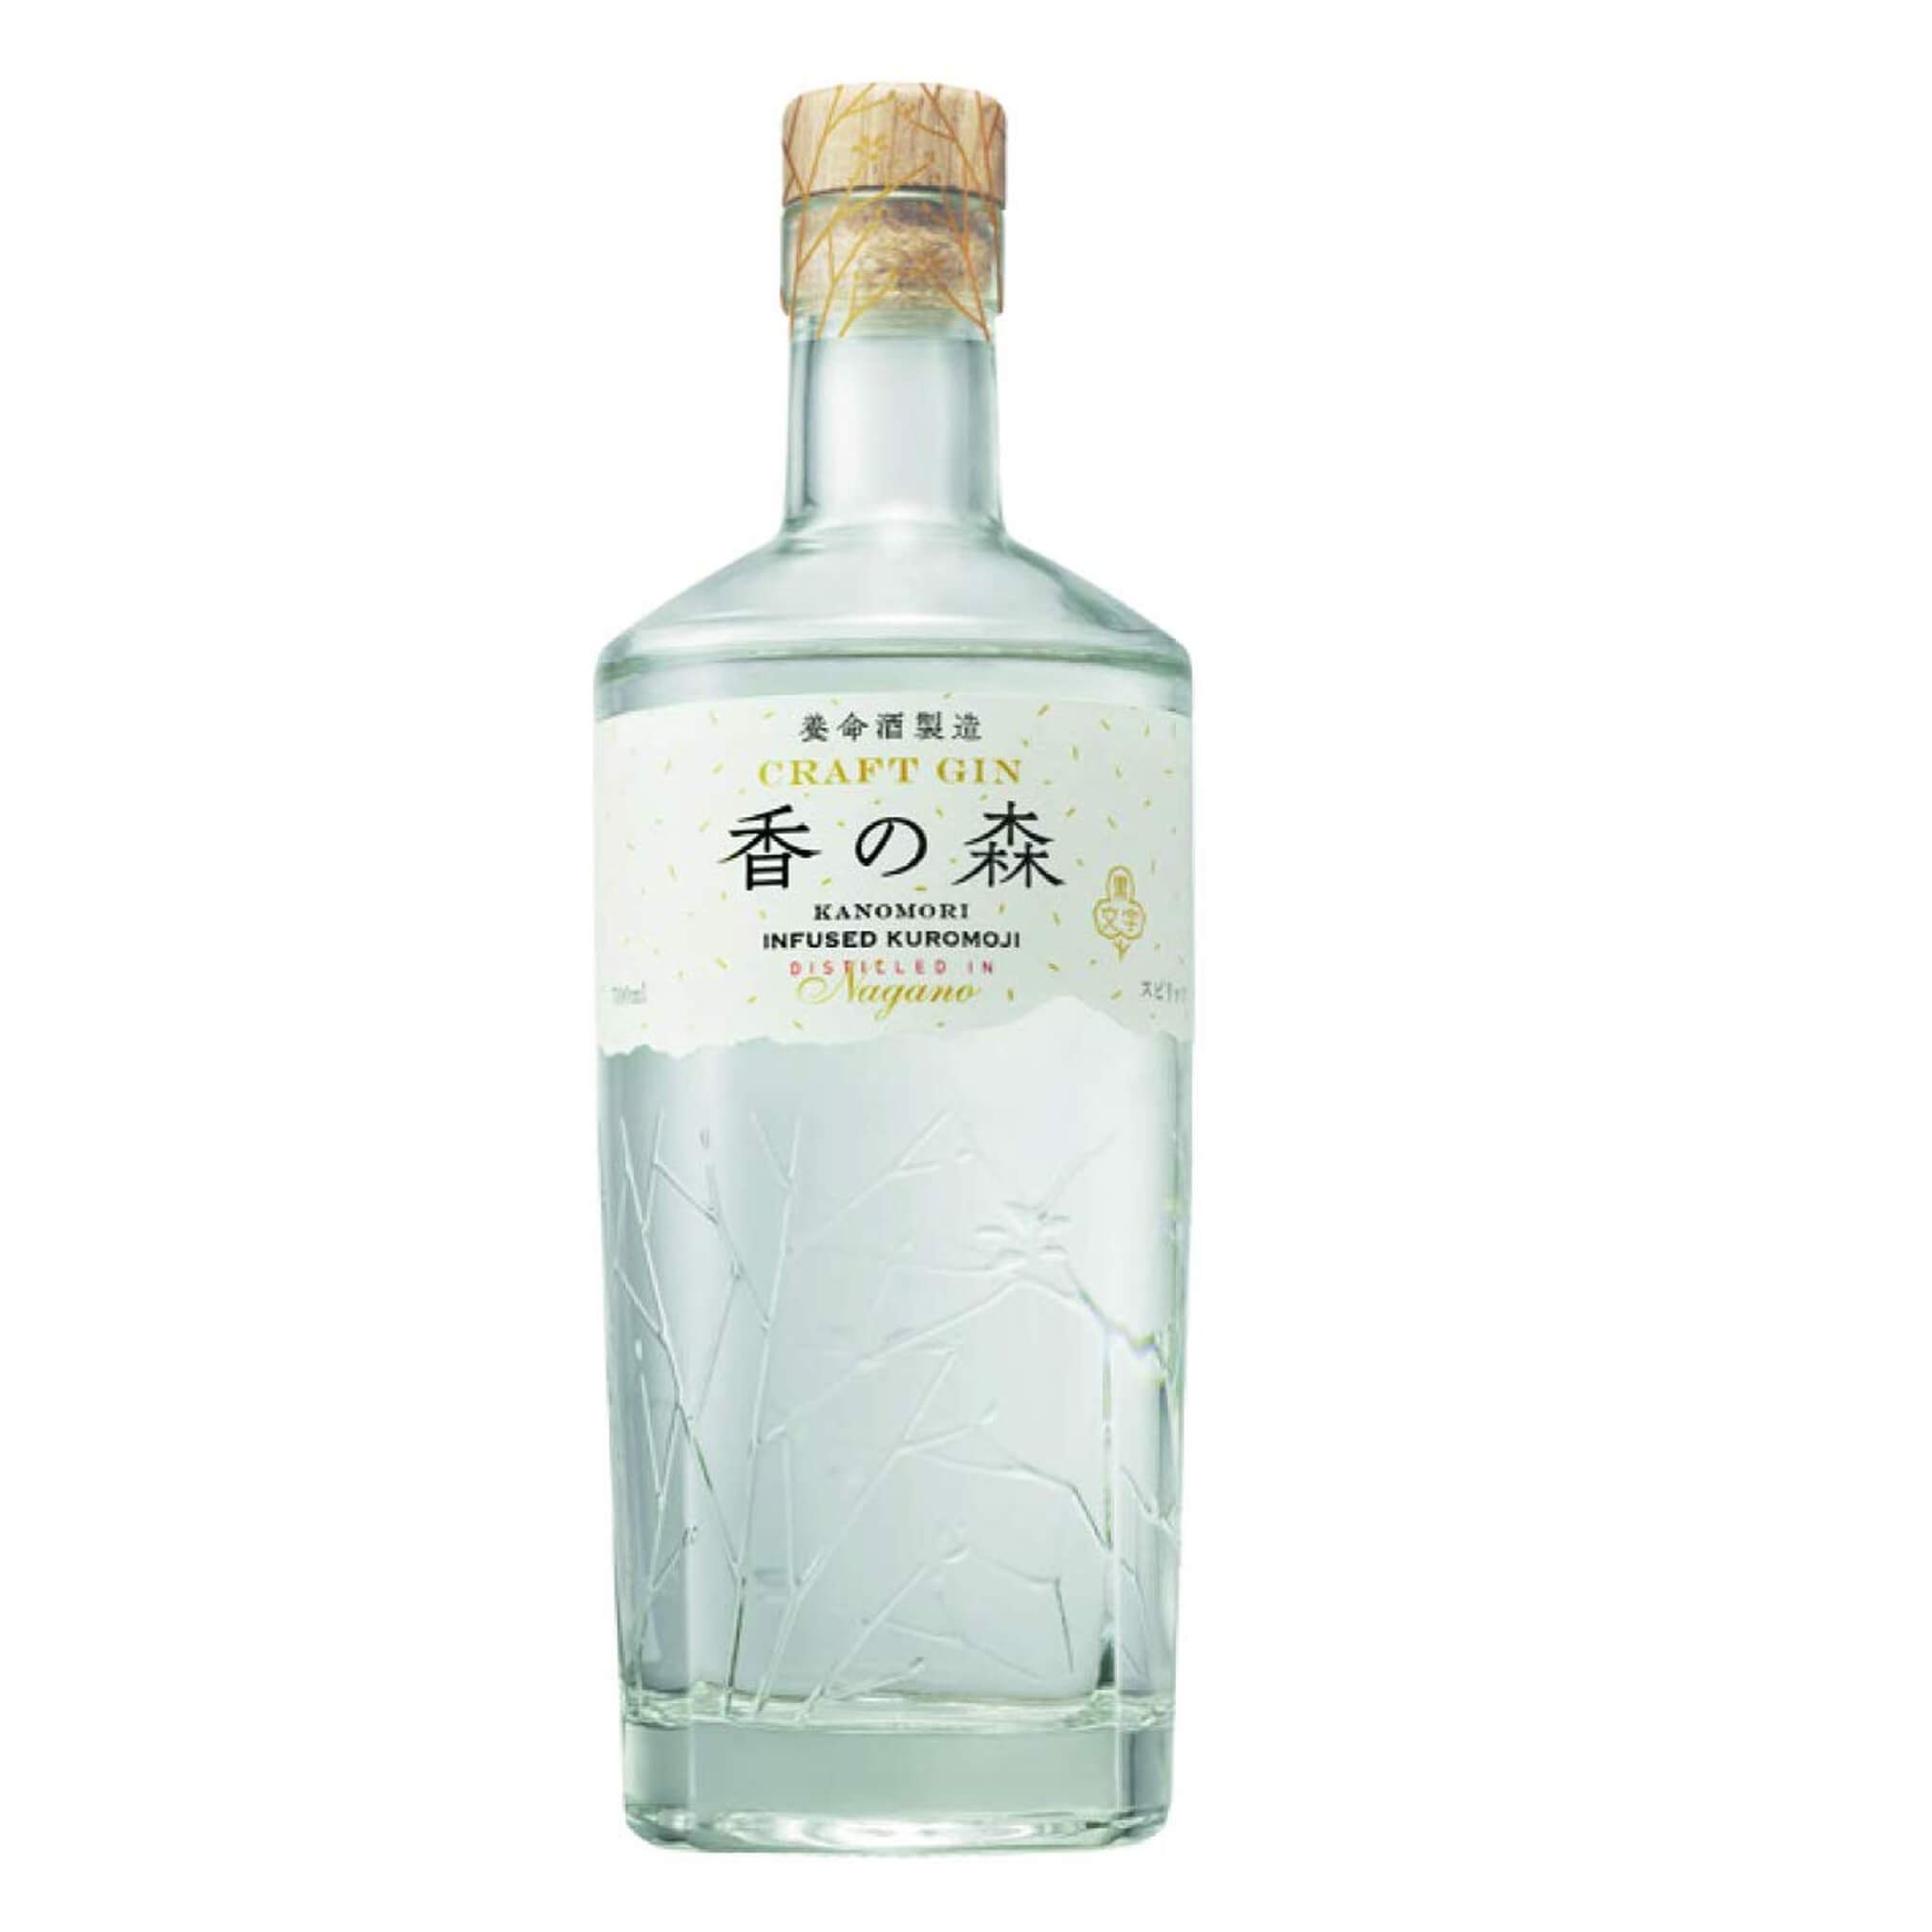 Craft Gin Kanomori 47% Spirit 700Ml (By Yomeishu)